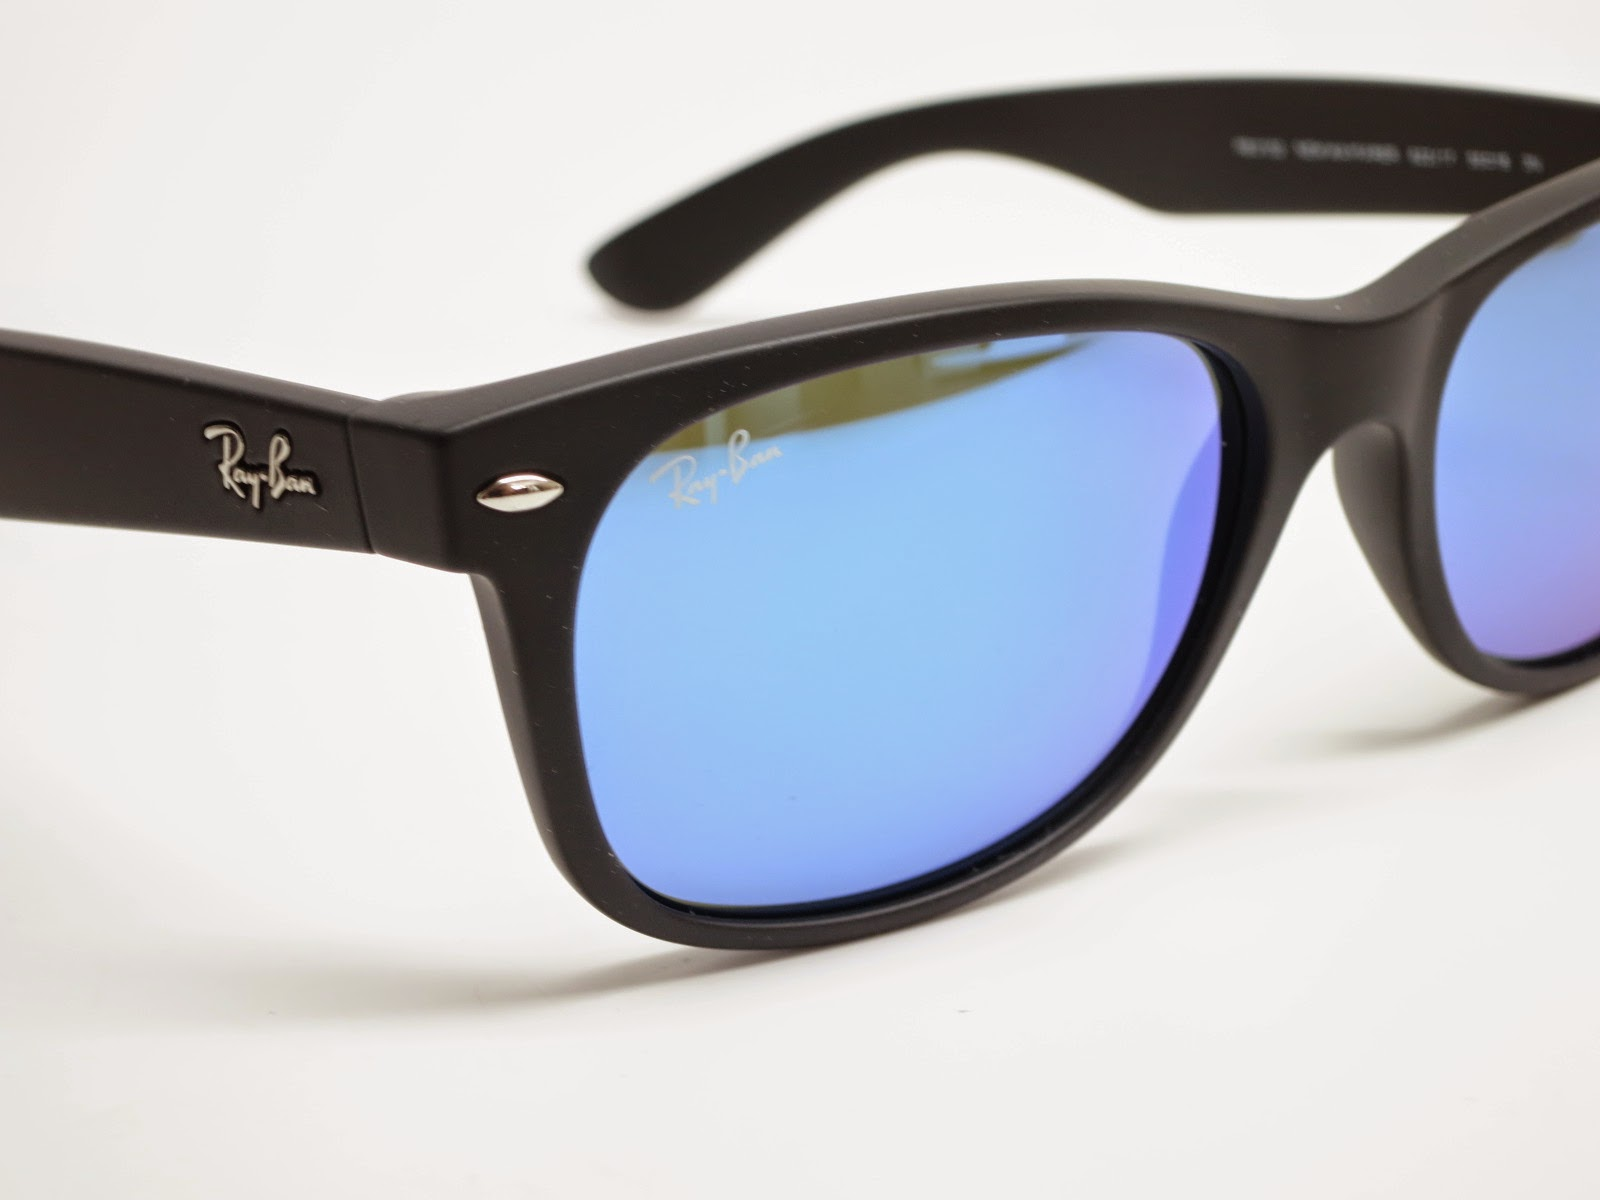 1313e05eed7 Fake Ray Ban 2132 55mm « Heritage Malta